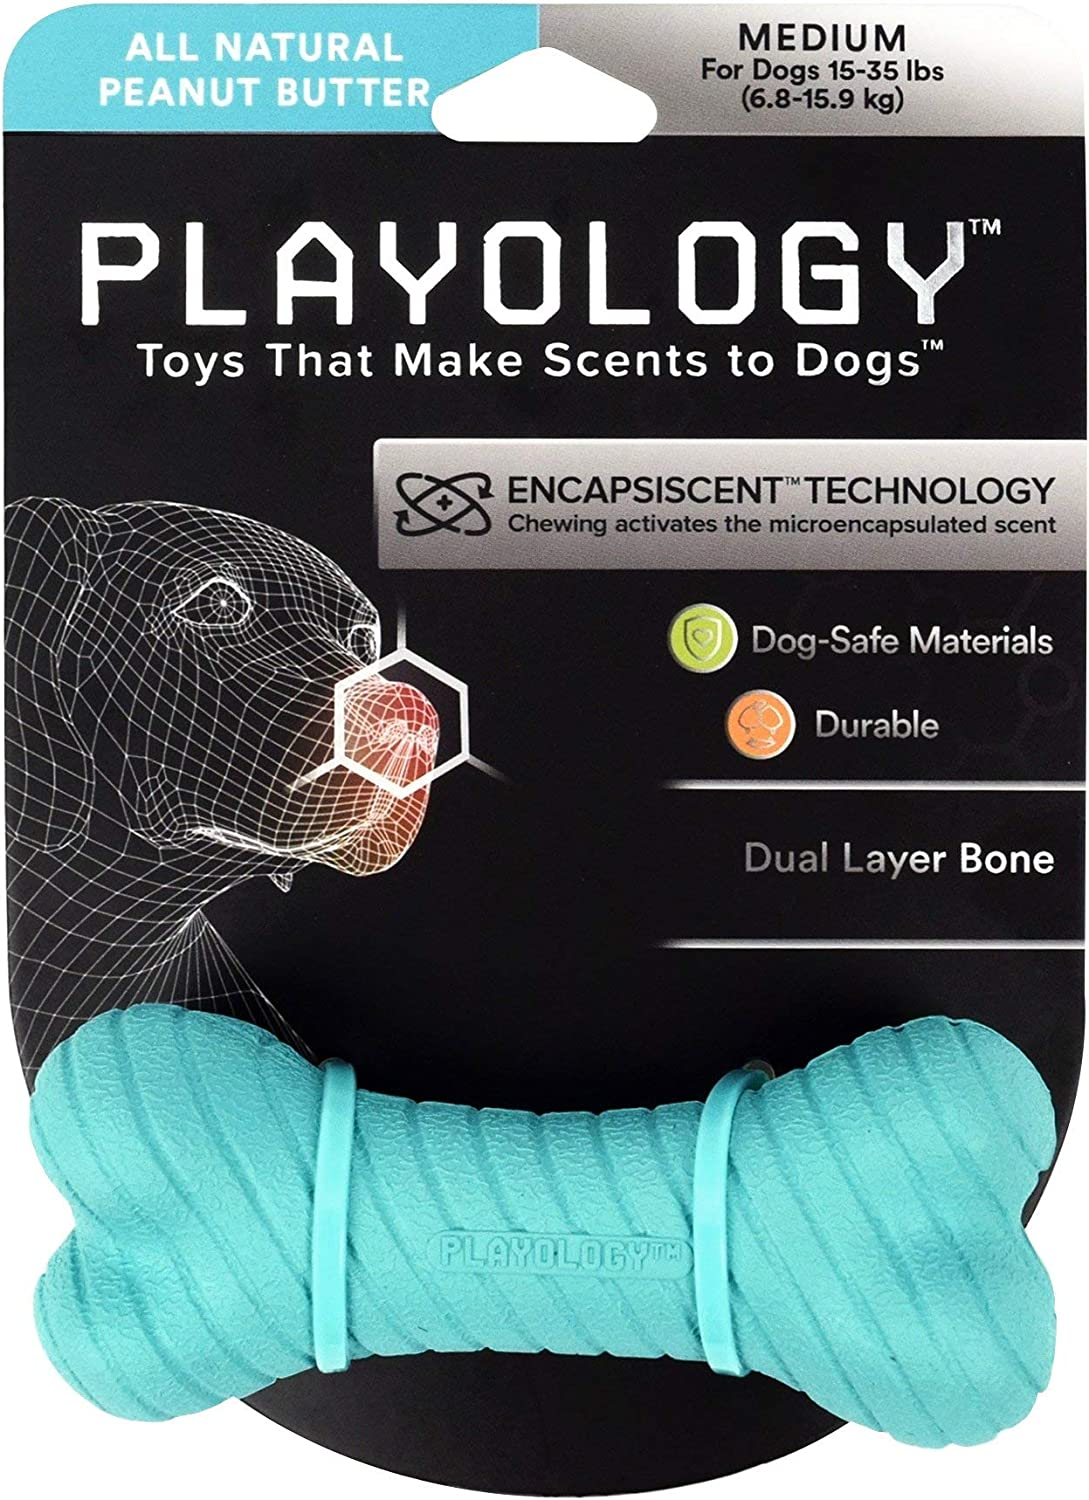 Playology Dual Layer Bone Scented Dog Toy, Soft and Chewy on The Outside, Hard and Durable on The Inside, Peanut Butter (Medium)